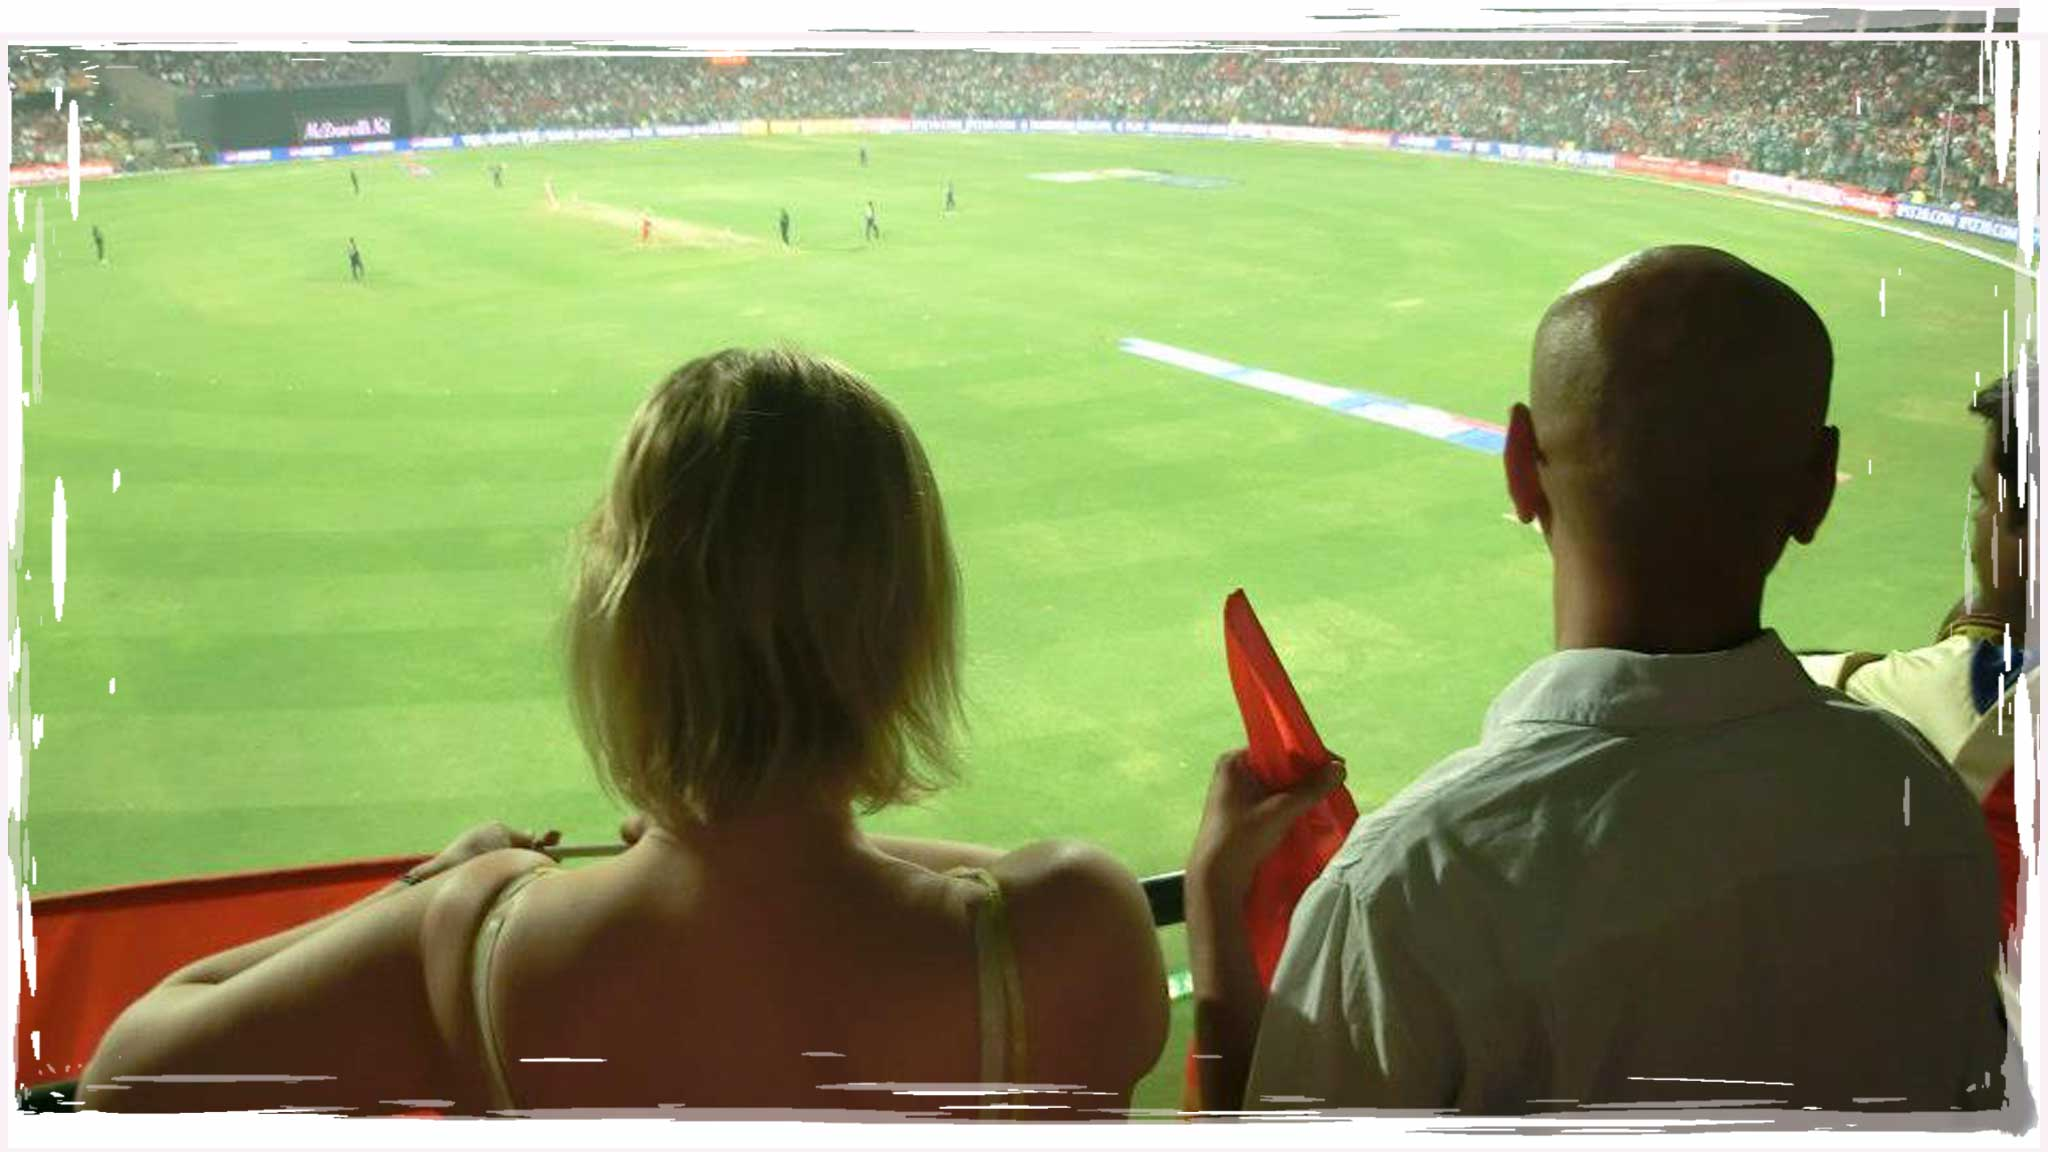 I Miss Living In India During IPL (RCB Cricket)